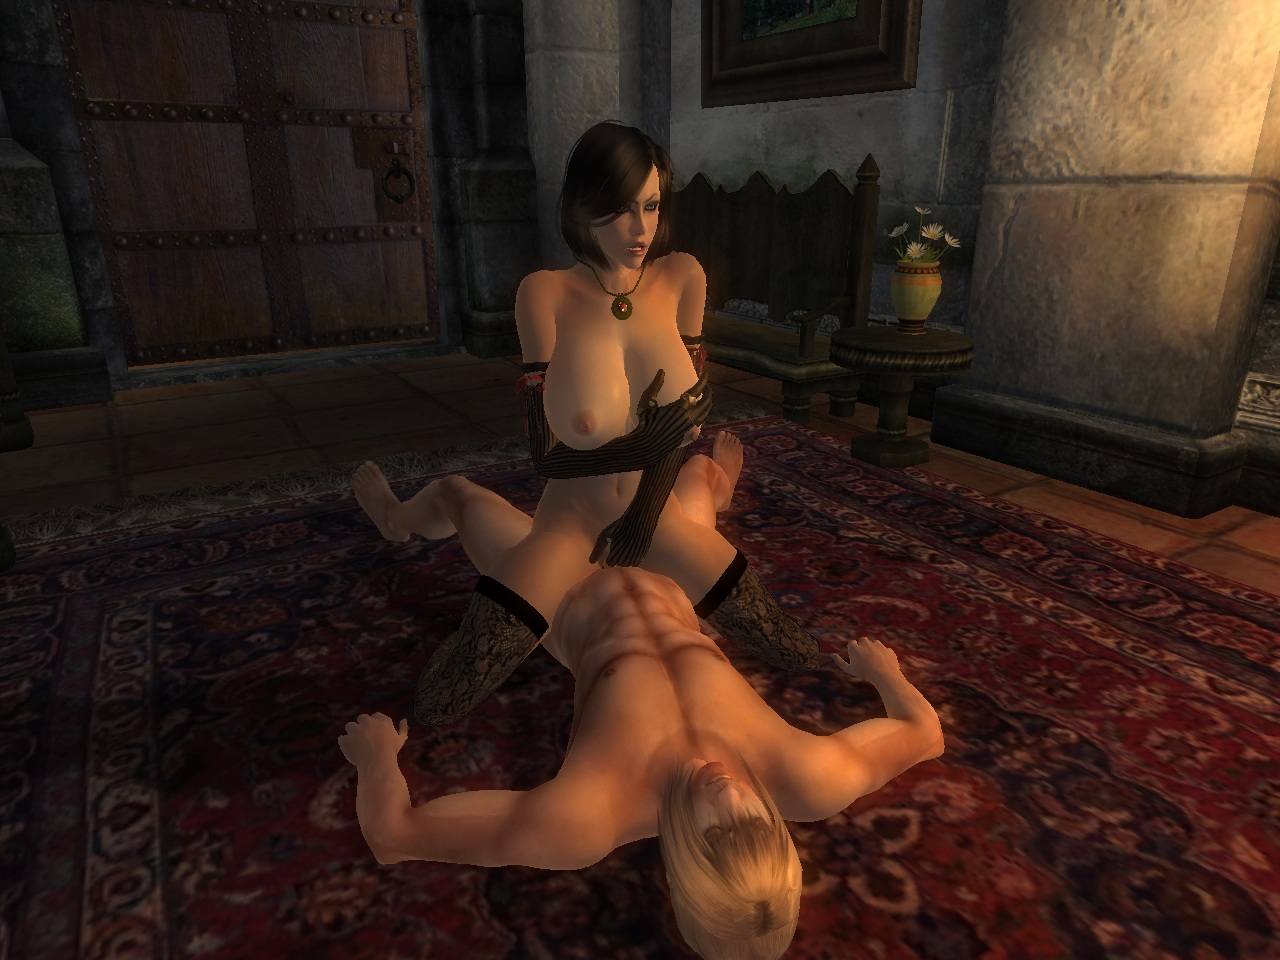 Oblivion japanese sex mod naked galleries